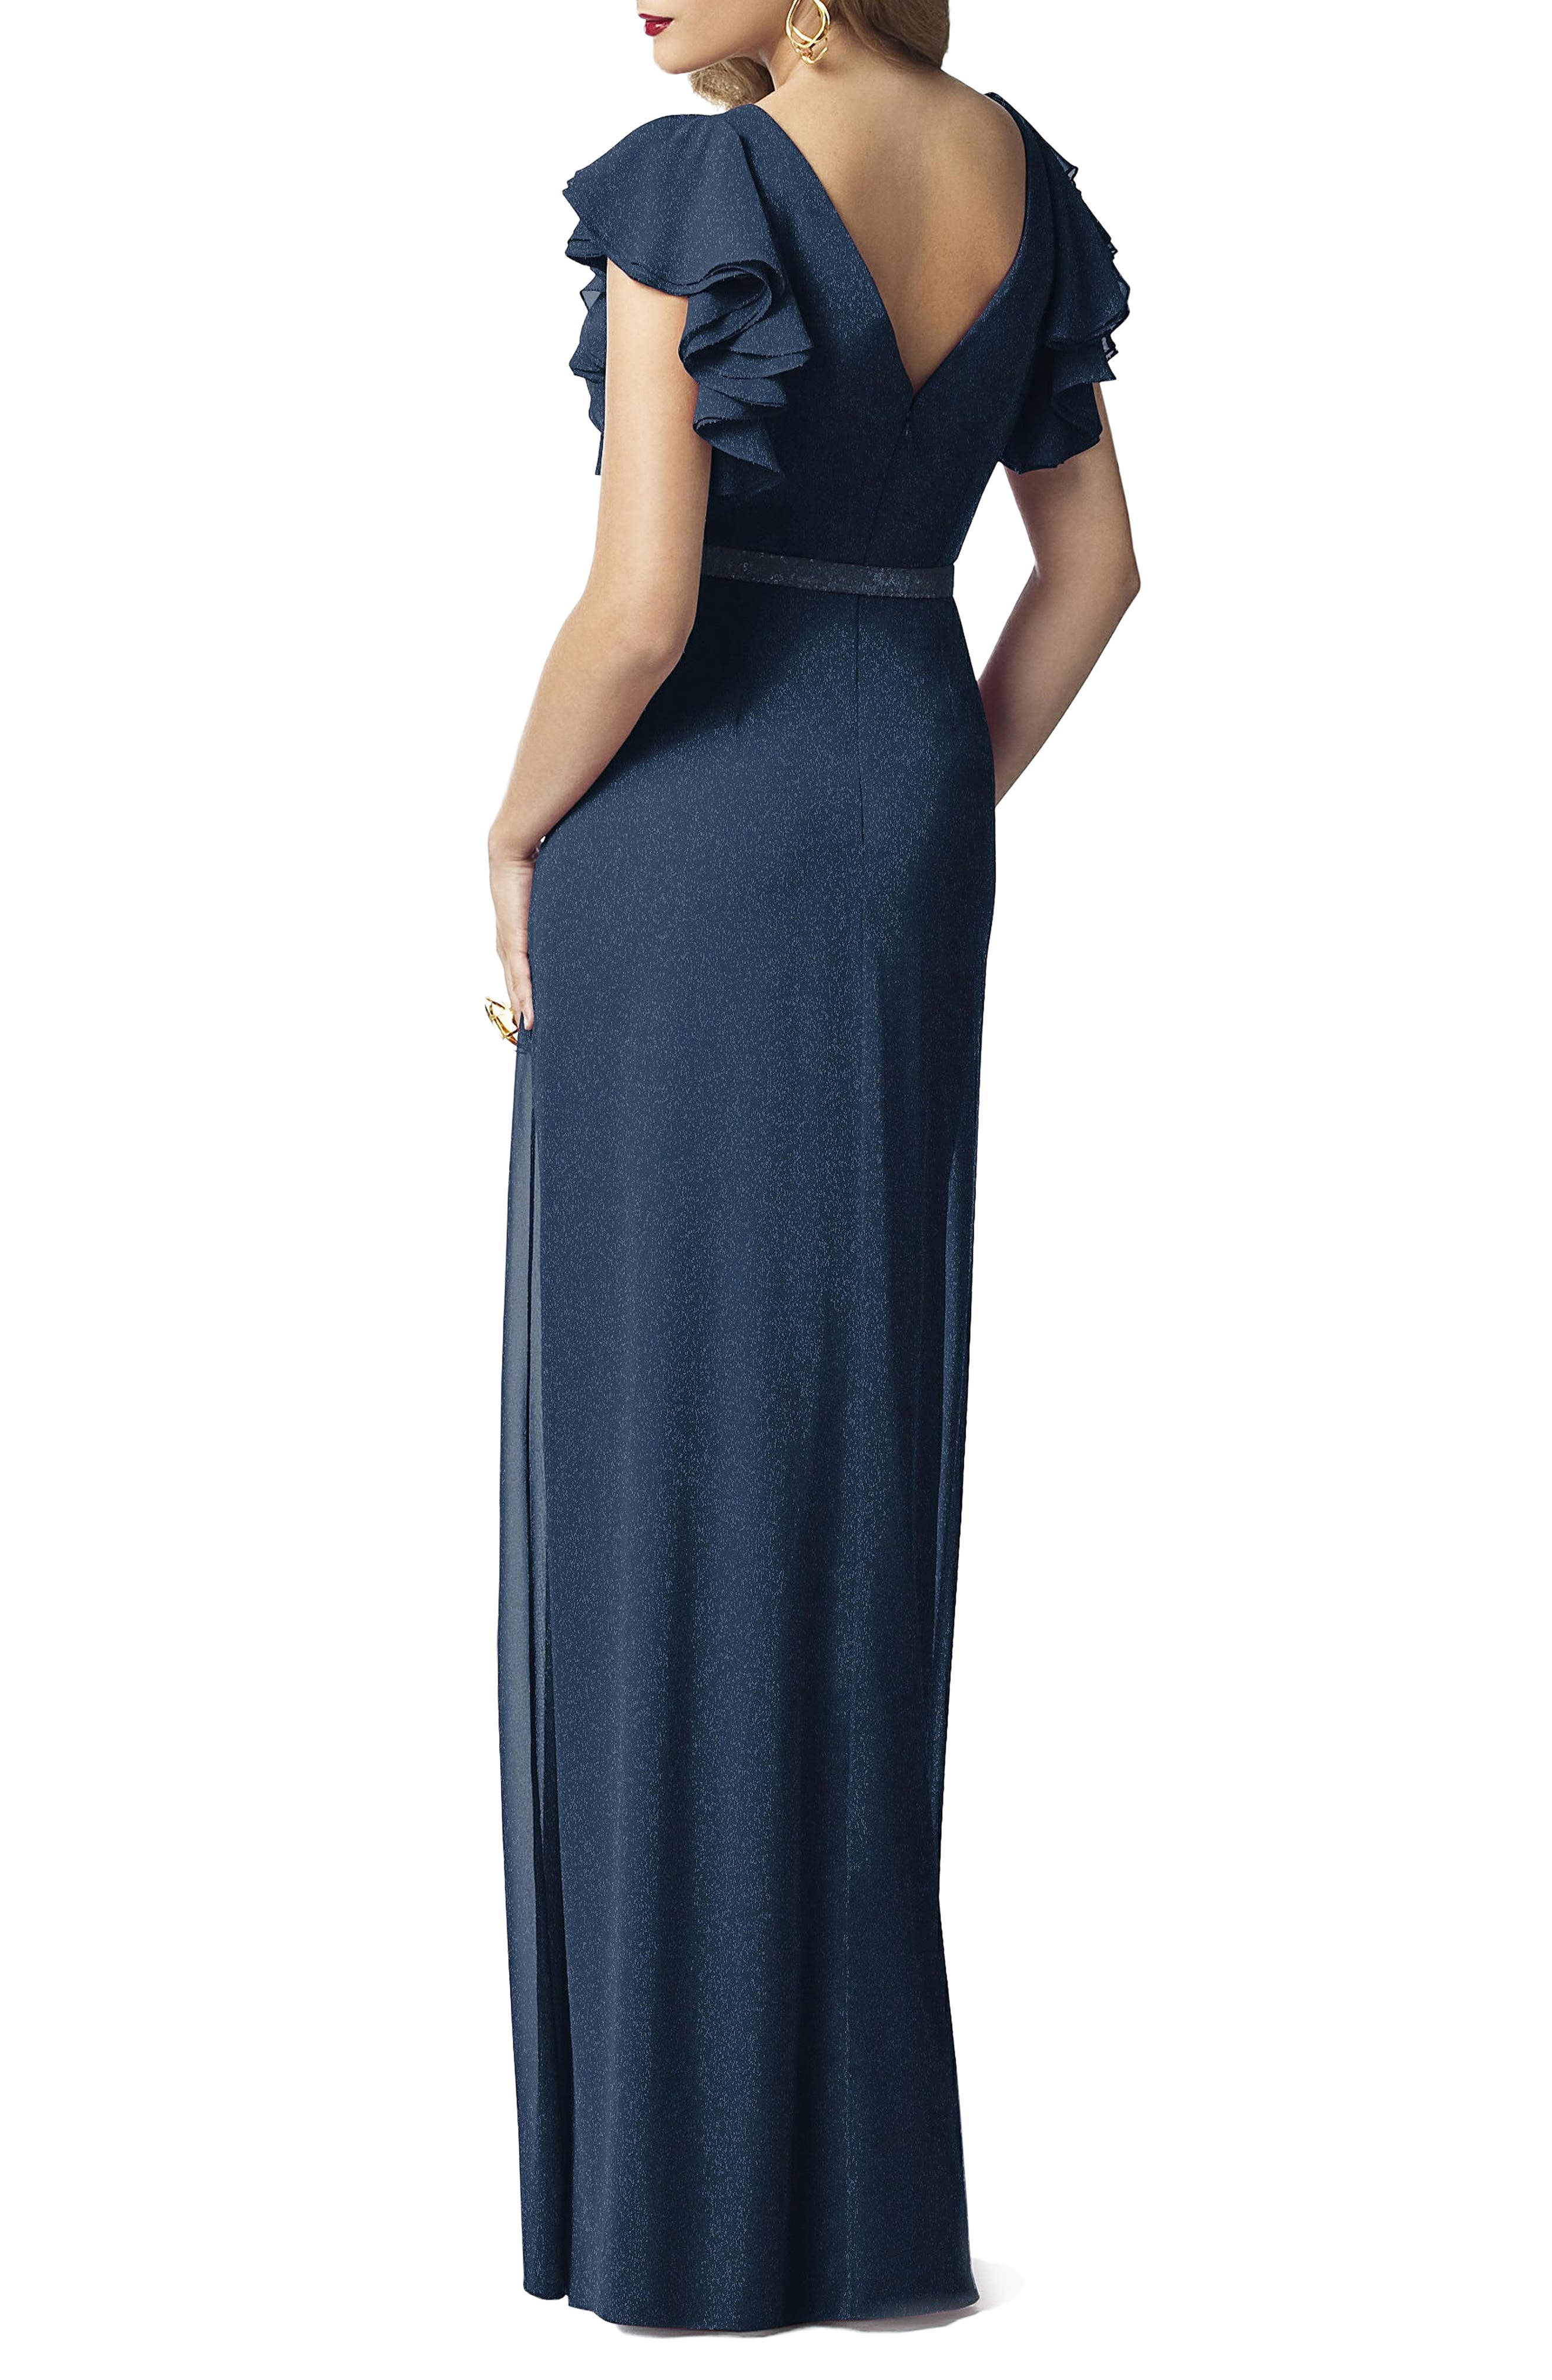 DESSY COLLECTION, Sequin Flutter Sleeve Gown, Alternate thumbnail 2, color, MIDNIGHT GOLD